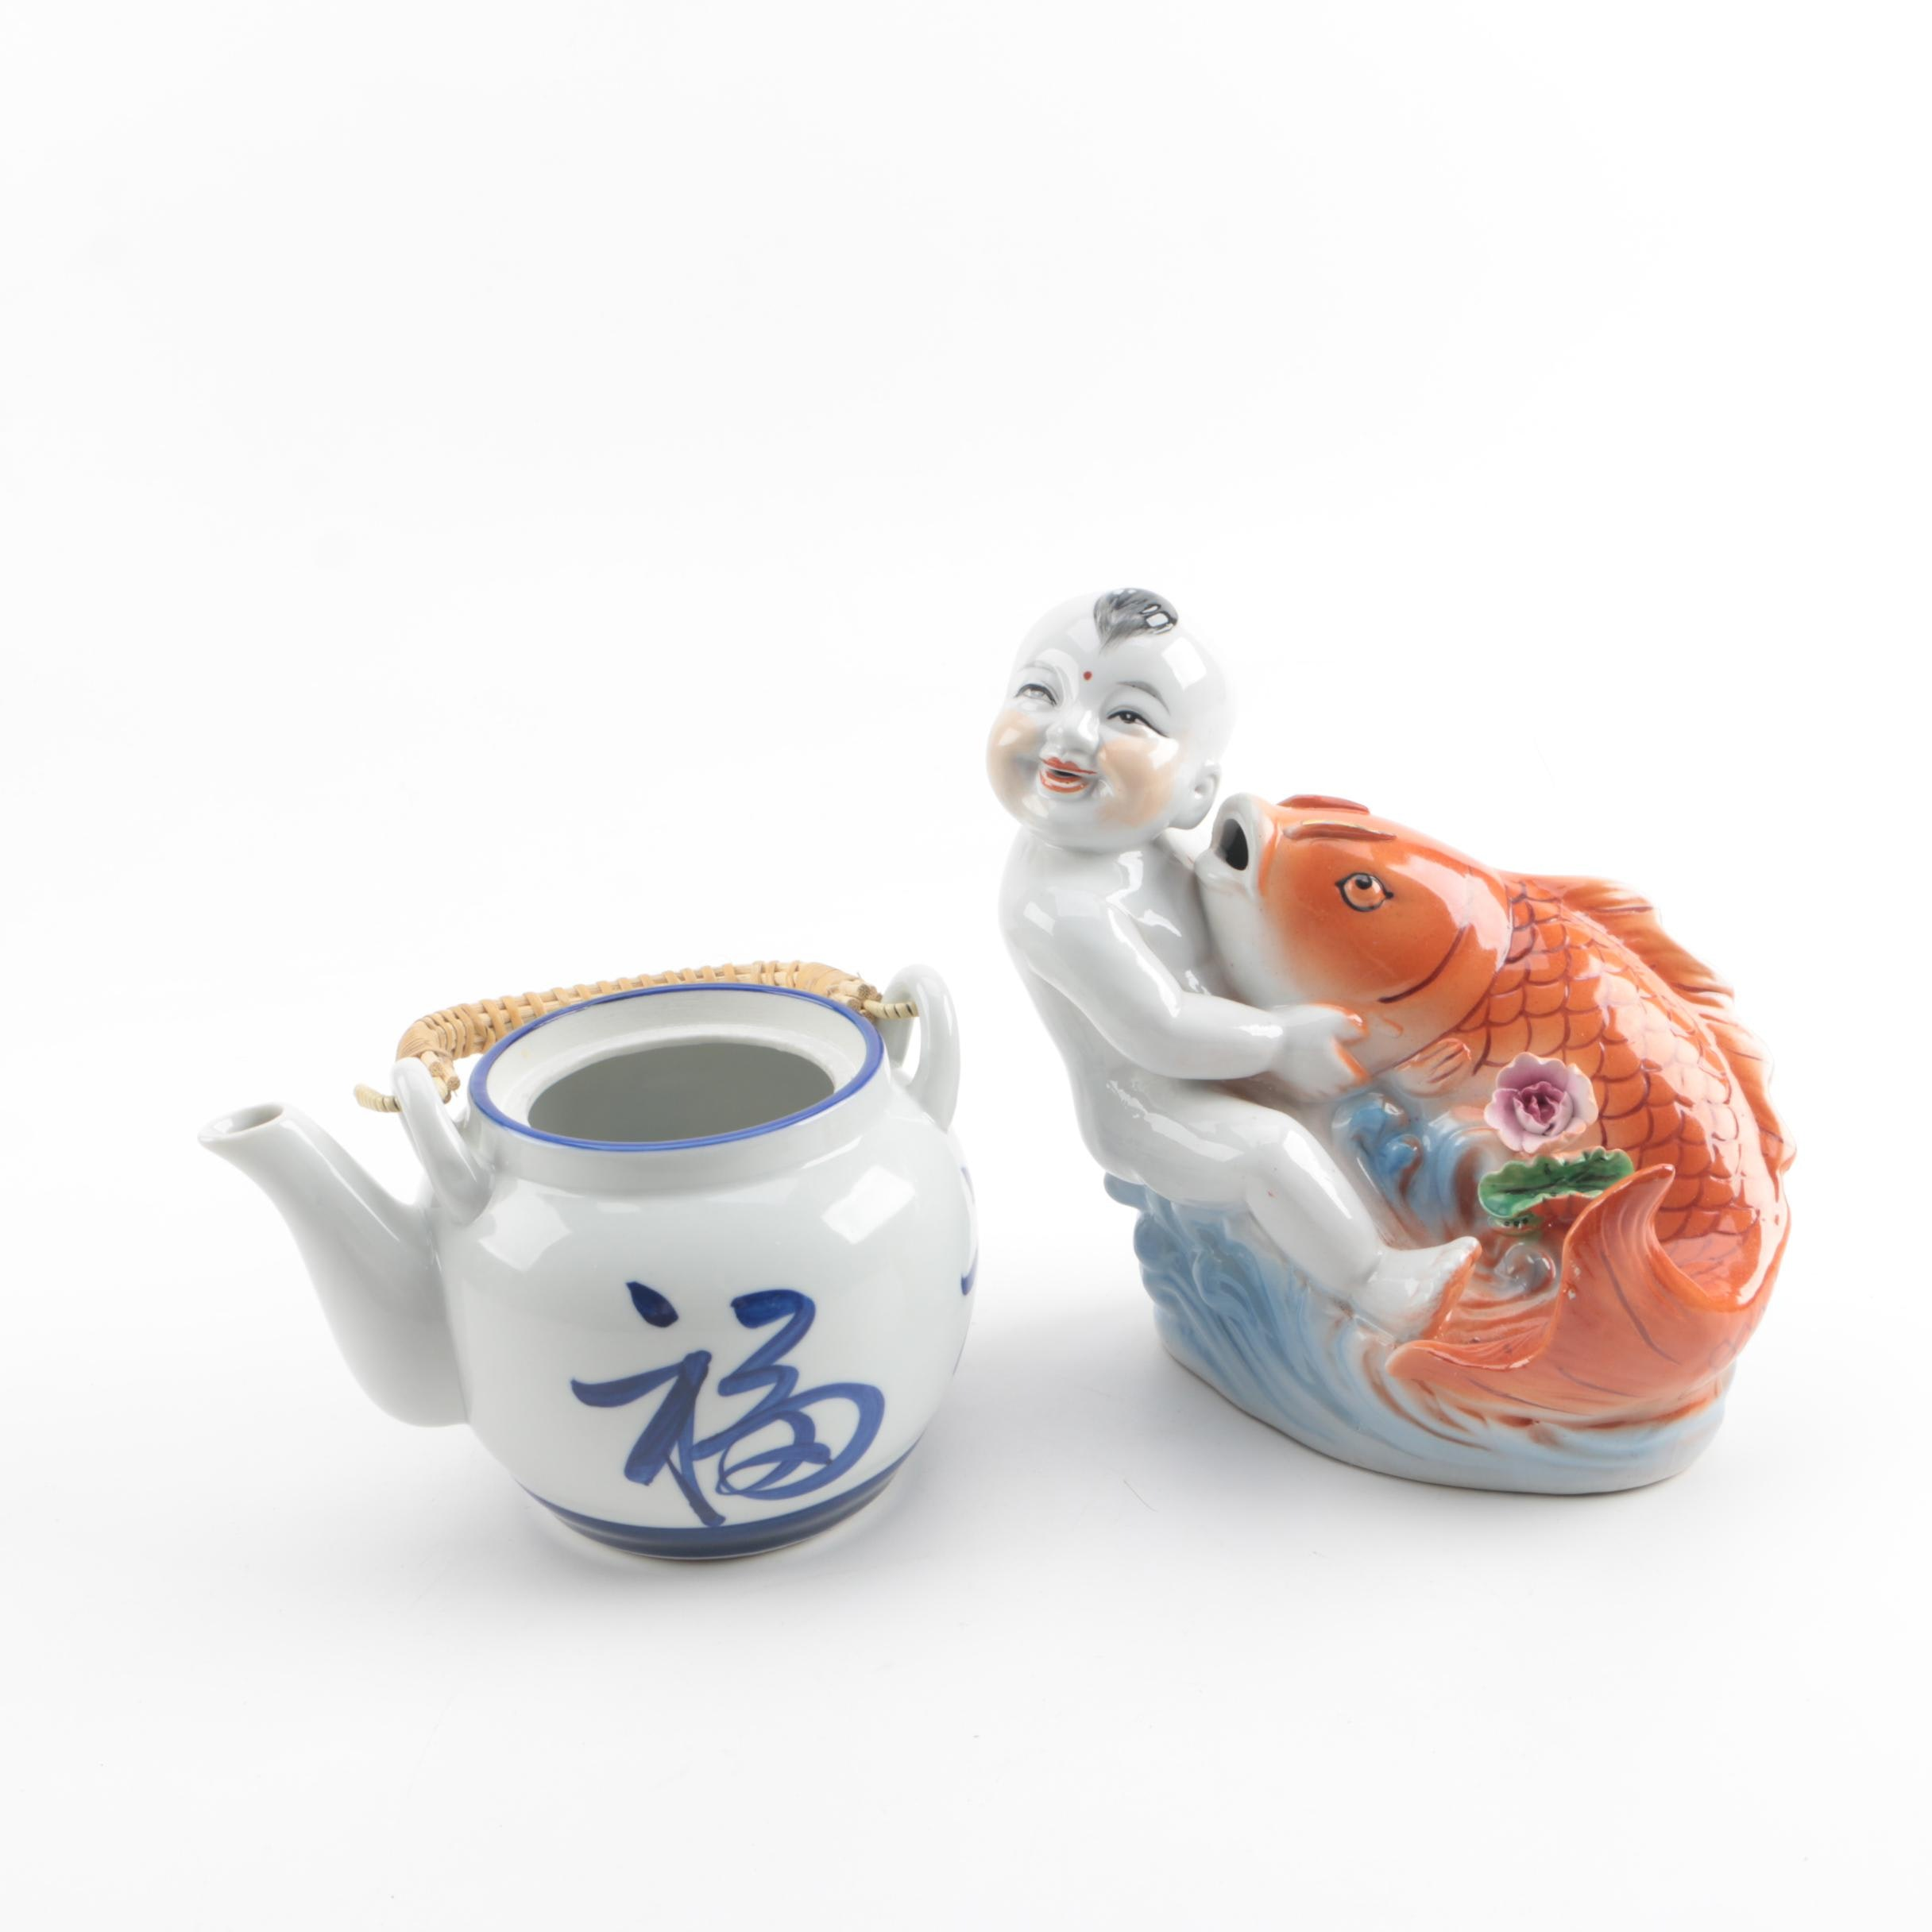 Chinese Inspired Ceramic Boy and Fish Figurine with Japanese Teapot